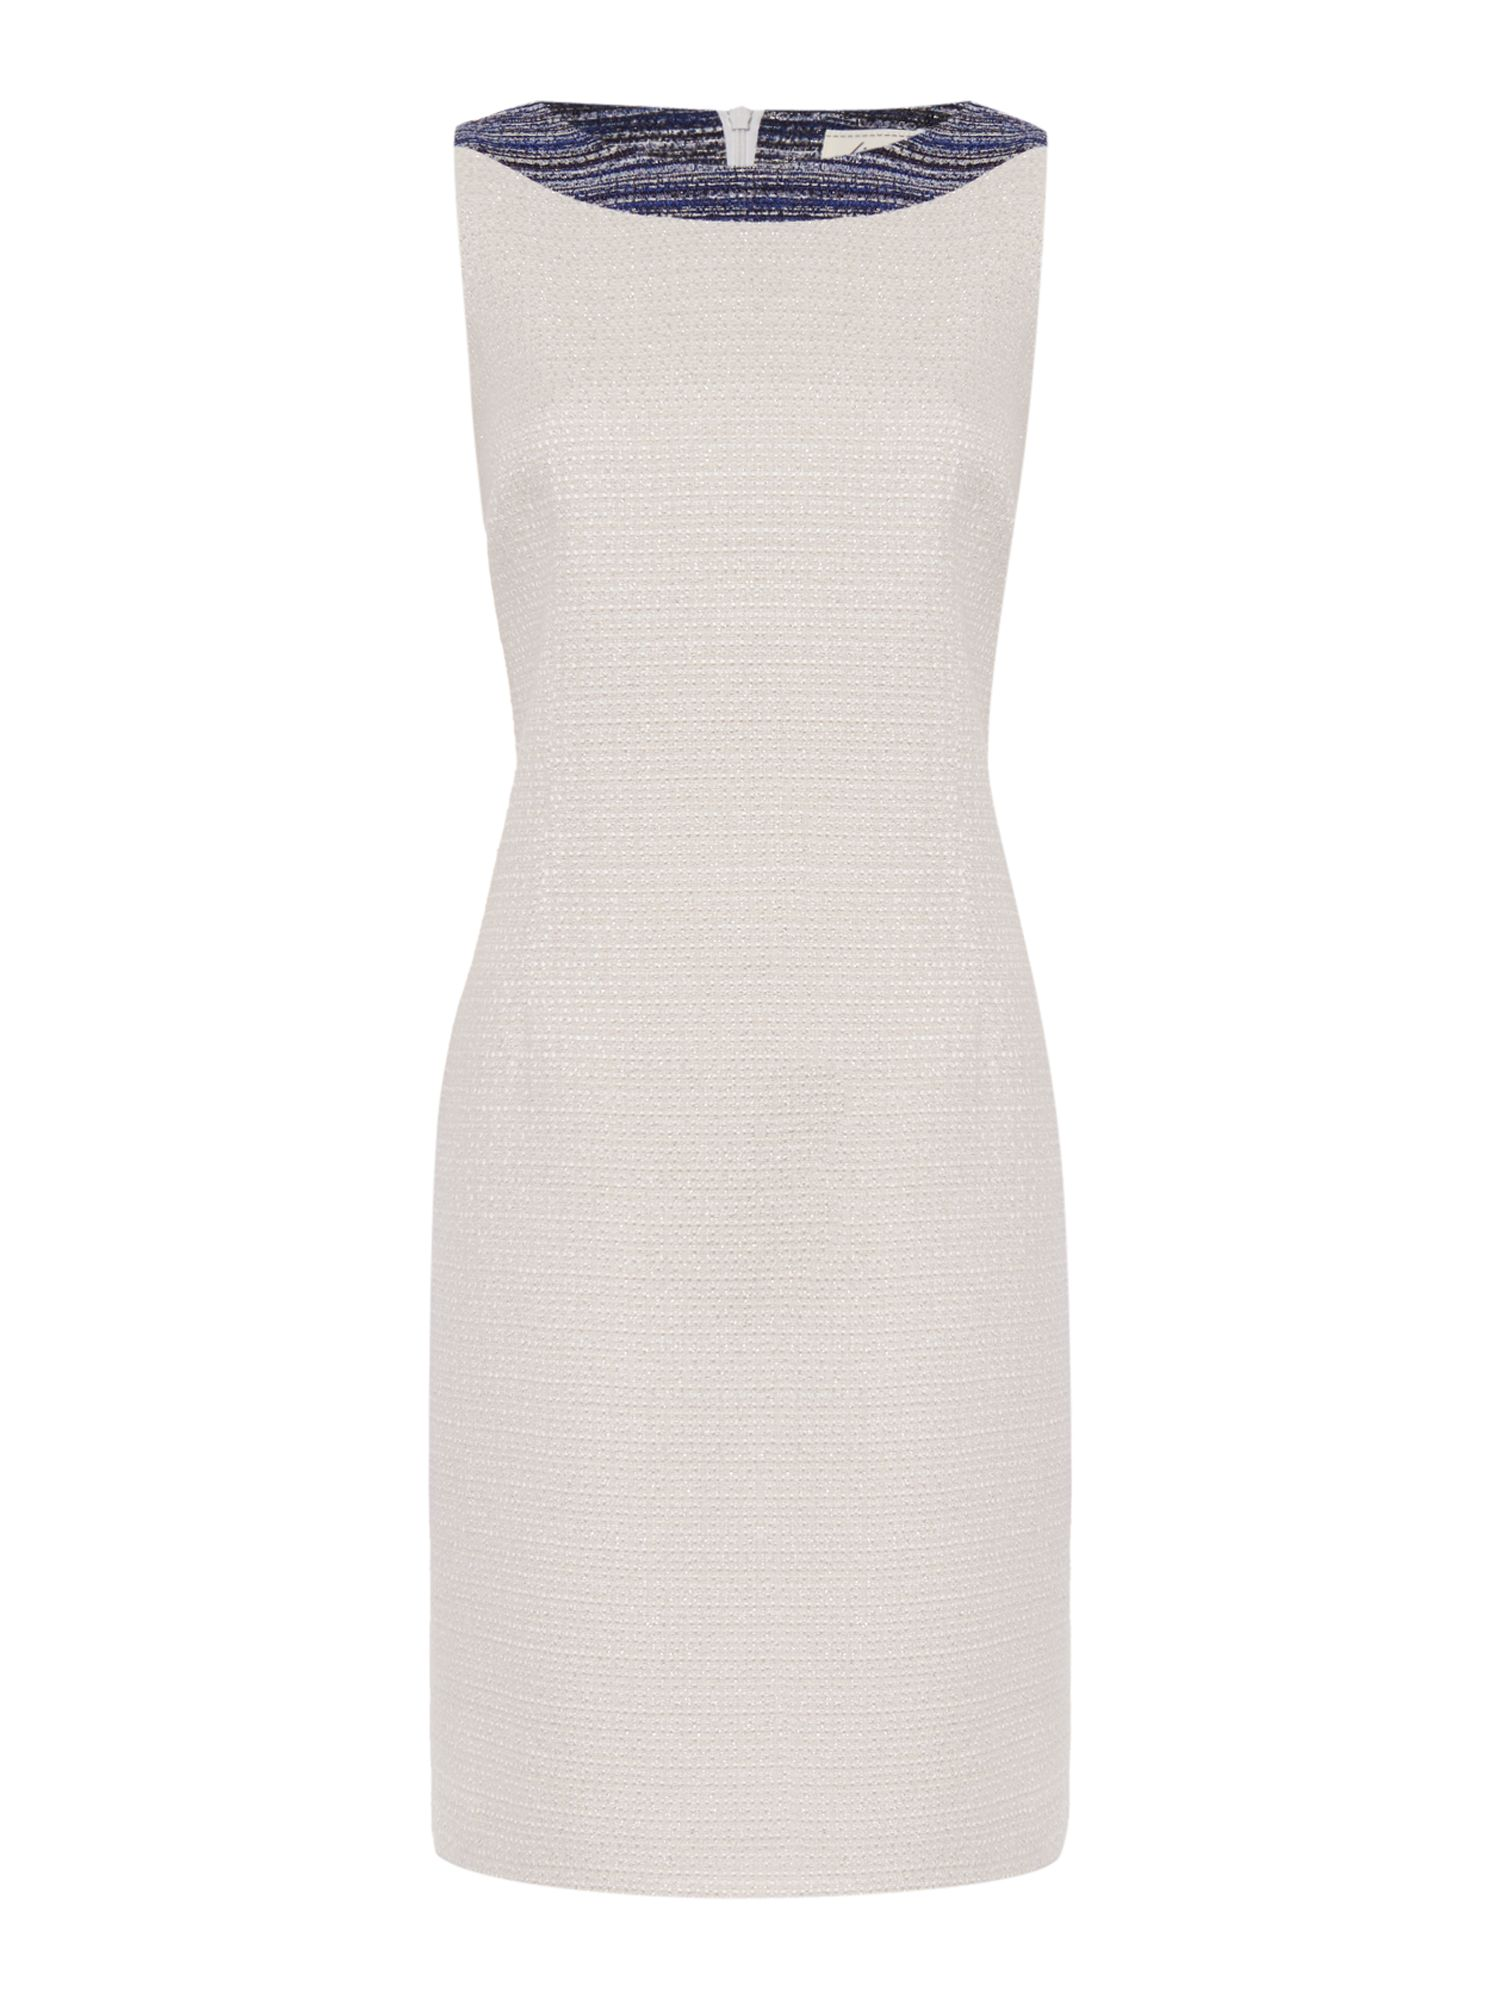 Linea Made in Britain Isla tweed shift dress, Ivory